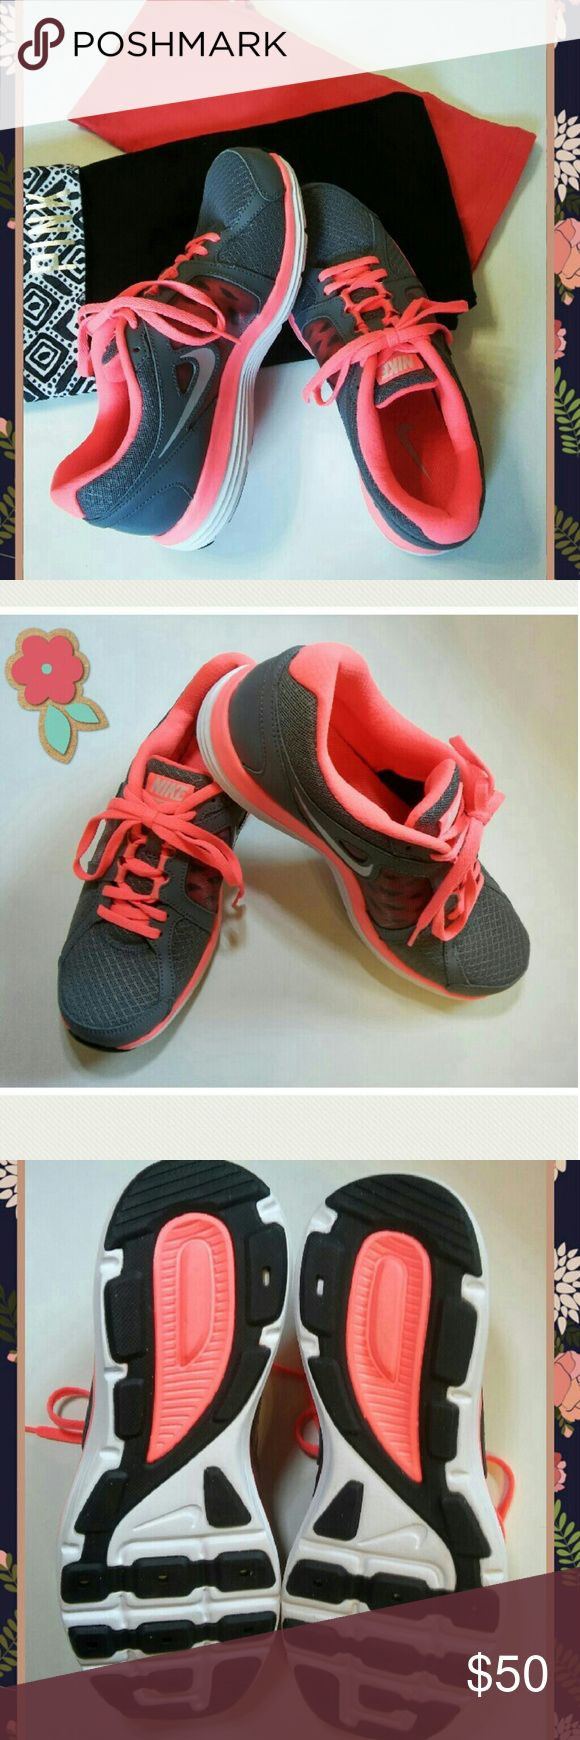 Nike Double Fusion New Size 8.5 New Without Box 🎉 These super cute Nikes are new, have been tried on but never worn and shows in spotless soles & condition of shoes. The box was thrown away. Medium dark gray with bright coral. Nike Shoes Athletic Shoes